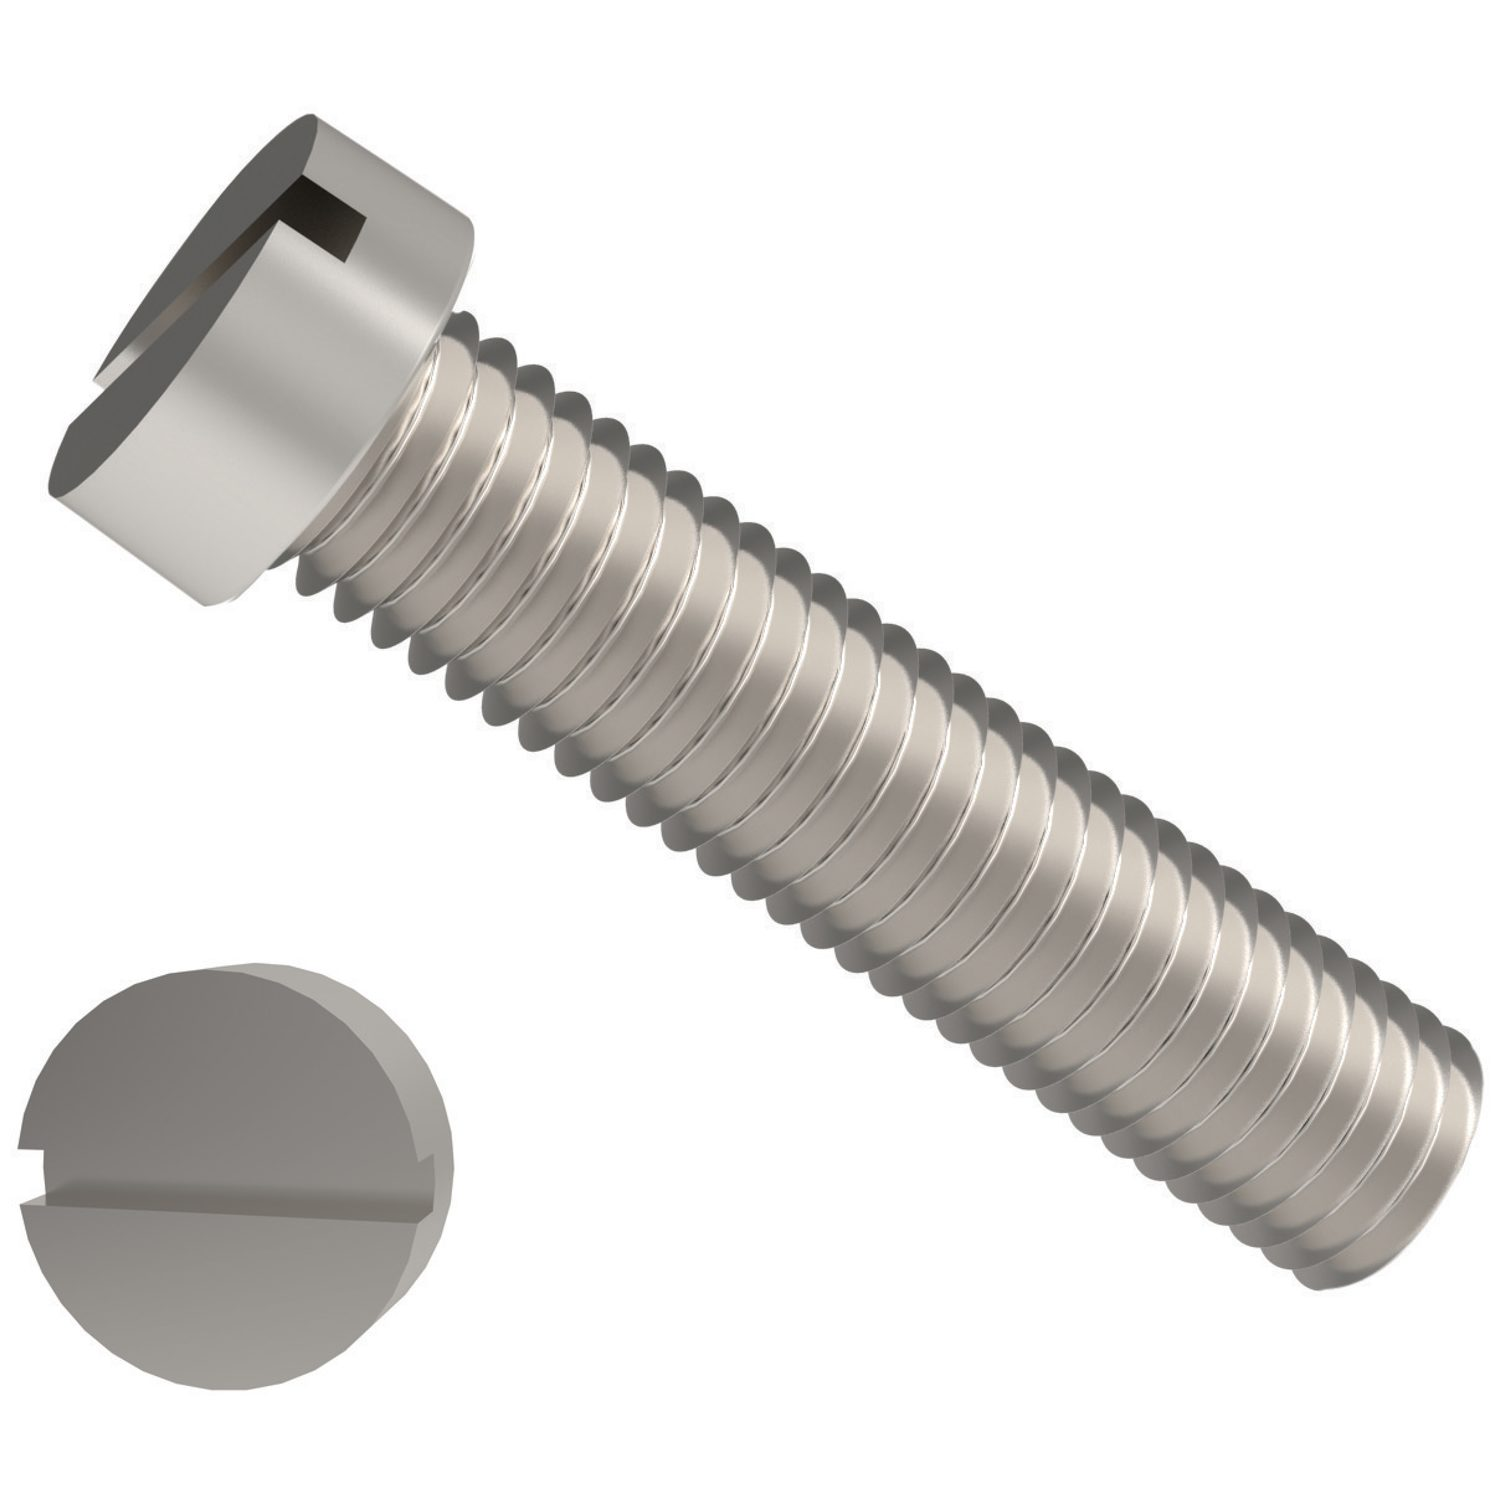 Slot Cheese Head Screws A2 stainless steel slot cheese head screws. Sizes range from M1,6 to M10. Manufactured to DIN 84.